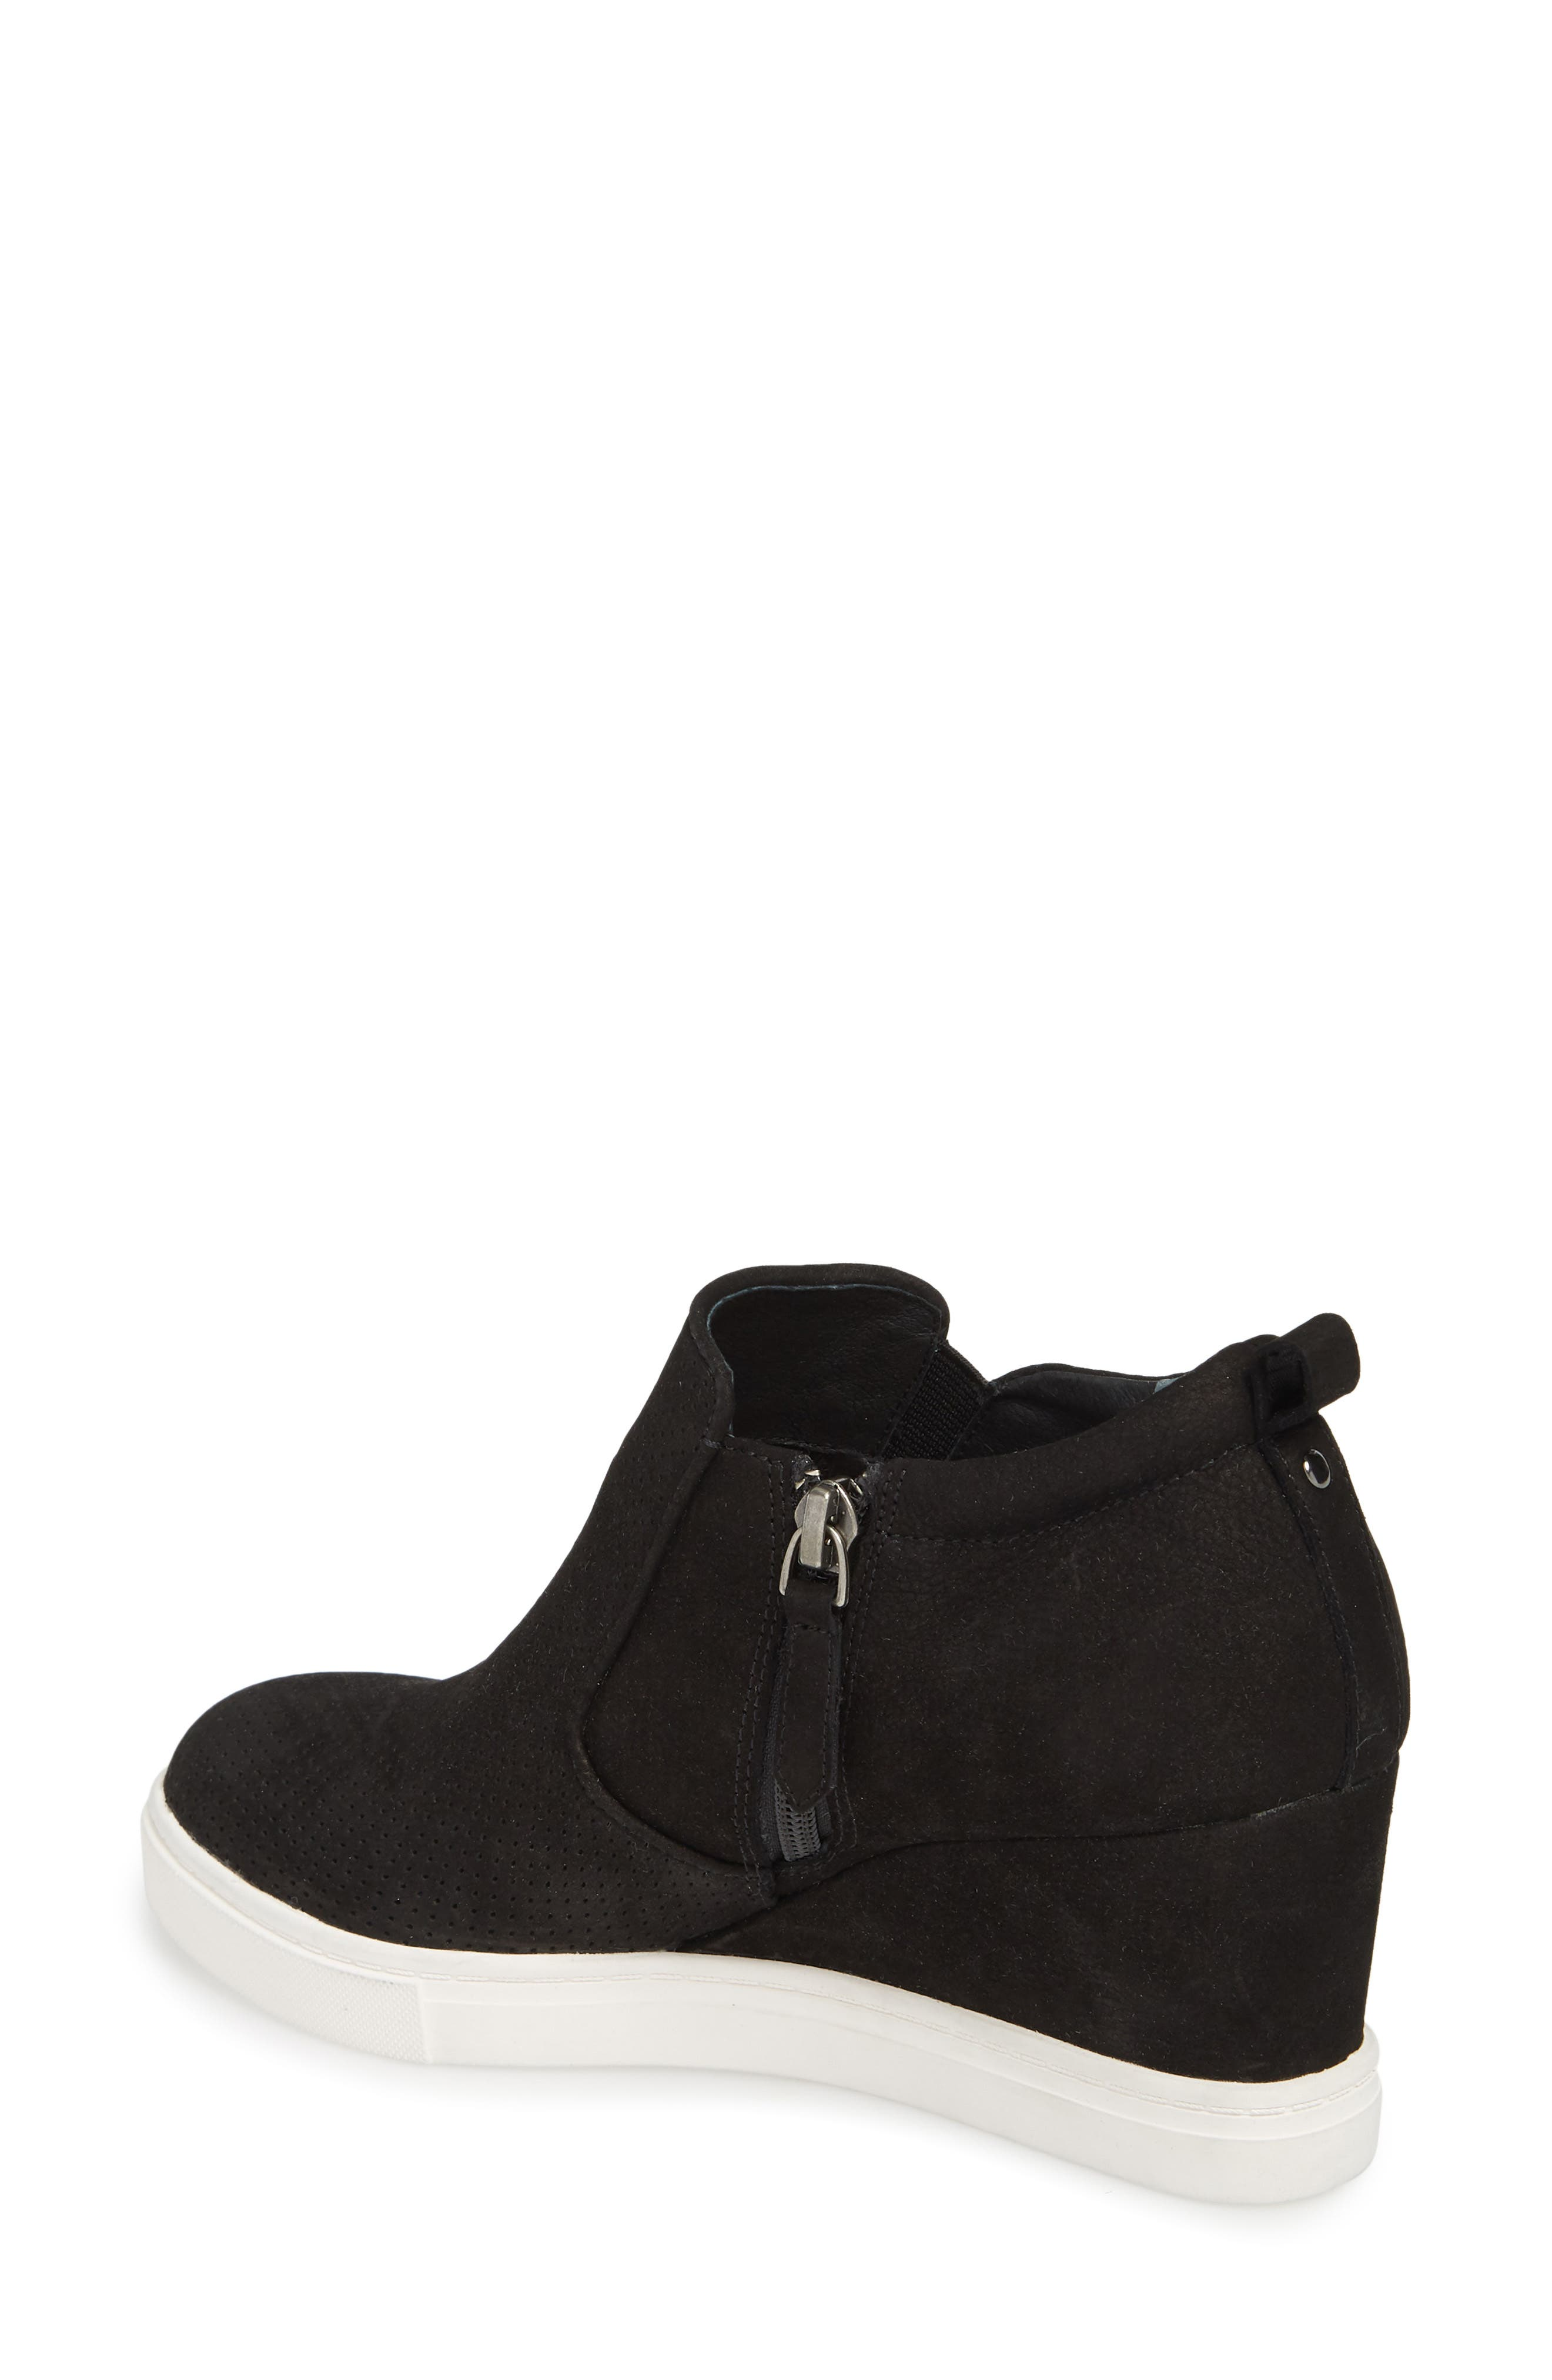 Aiden Wedge Sneaker,                             Alternate thumbnail 2, color,                             BLACK PERFORATED LEATHER